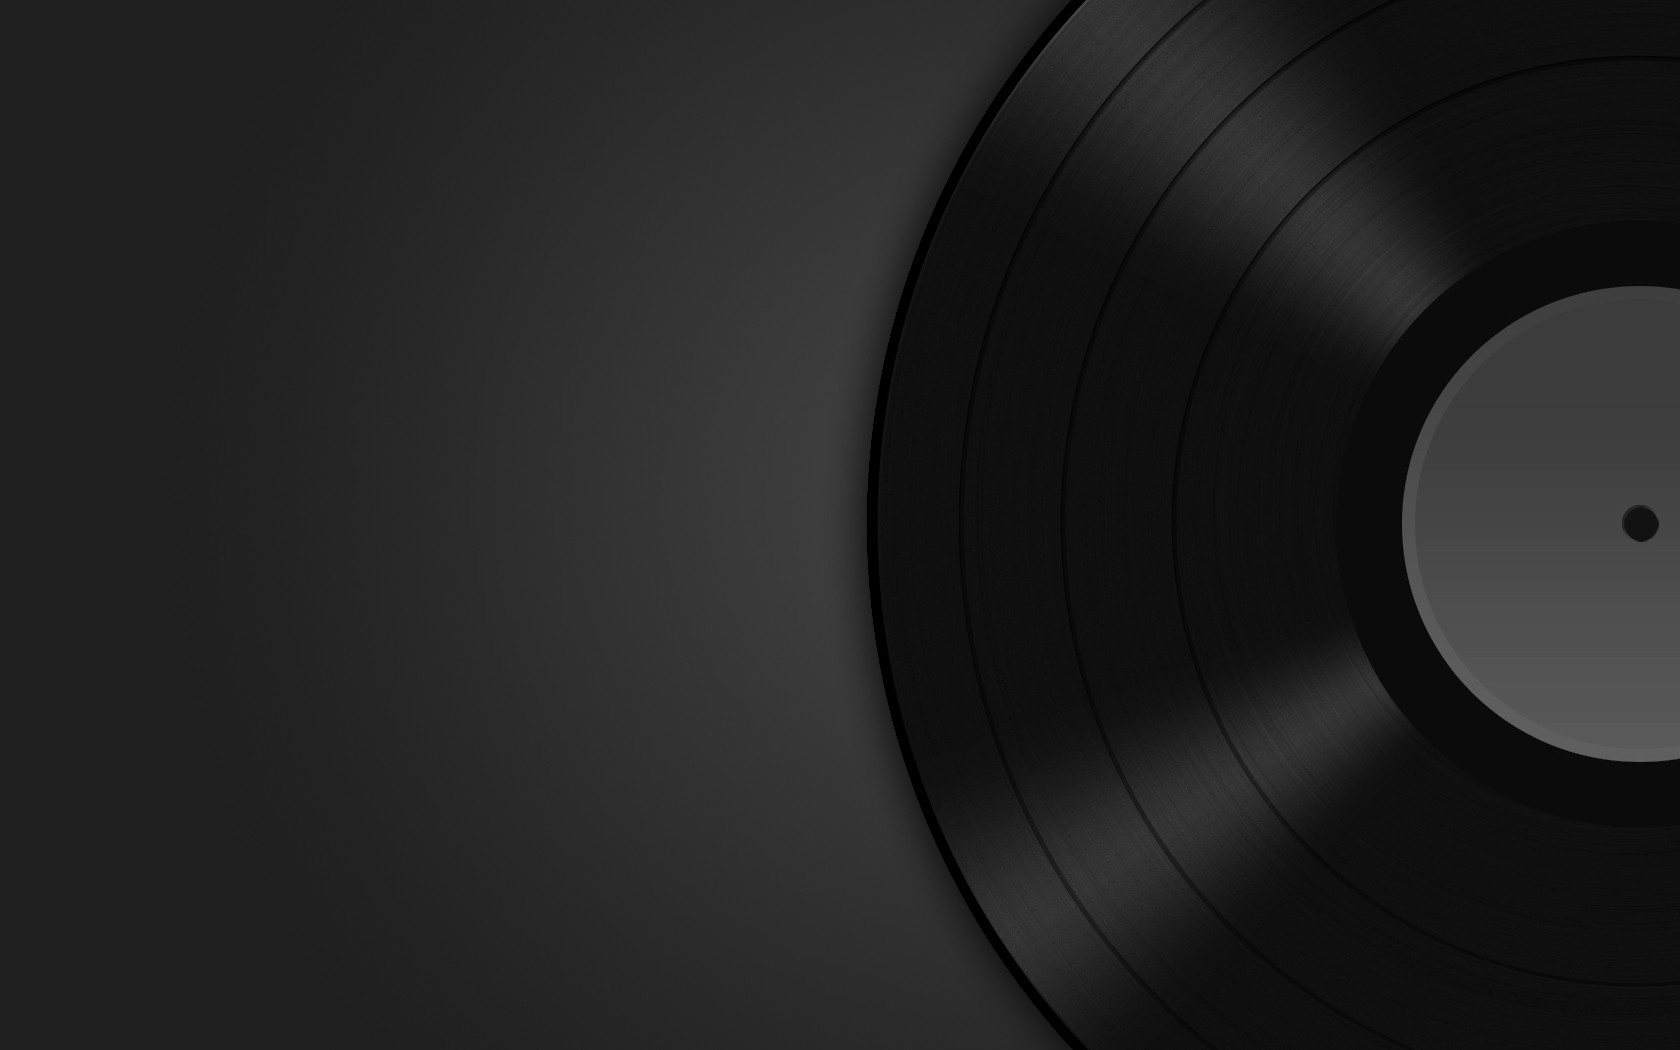 Music Wallpaper Amazing Hd Shattered Vinyl Hd Wallpaper 1680x1050